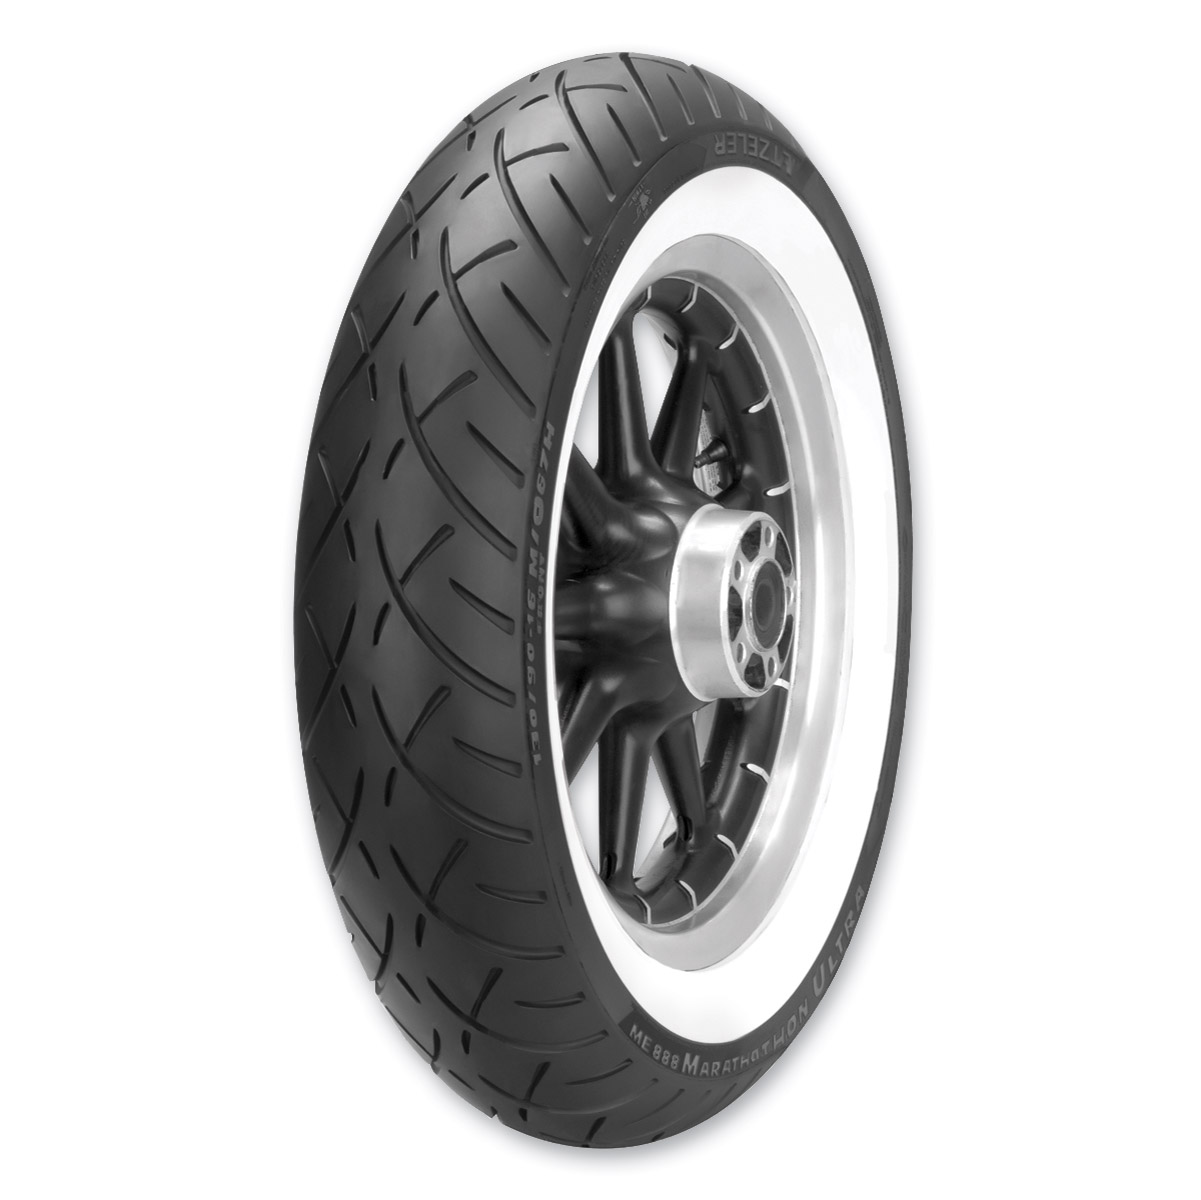 Metzeler ME888 130/90-16 Wide Whitewall Front Tire